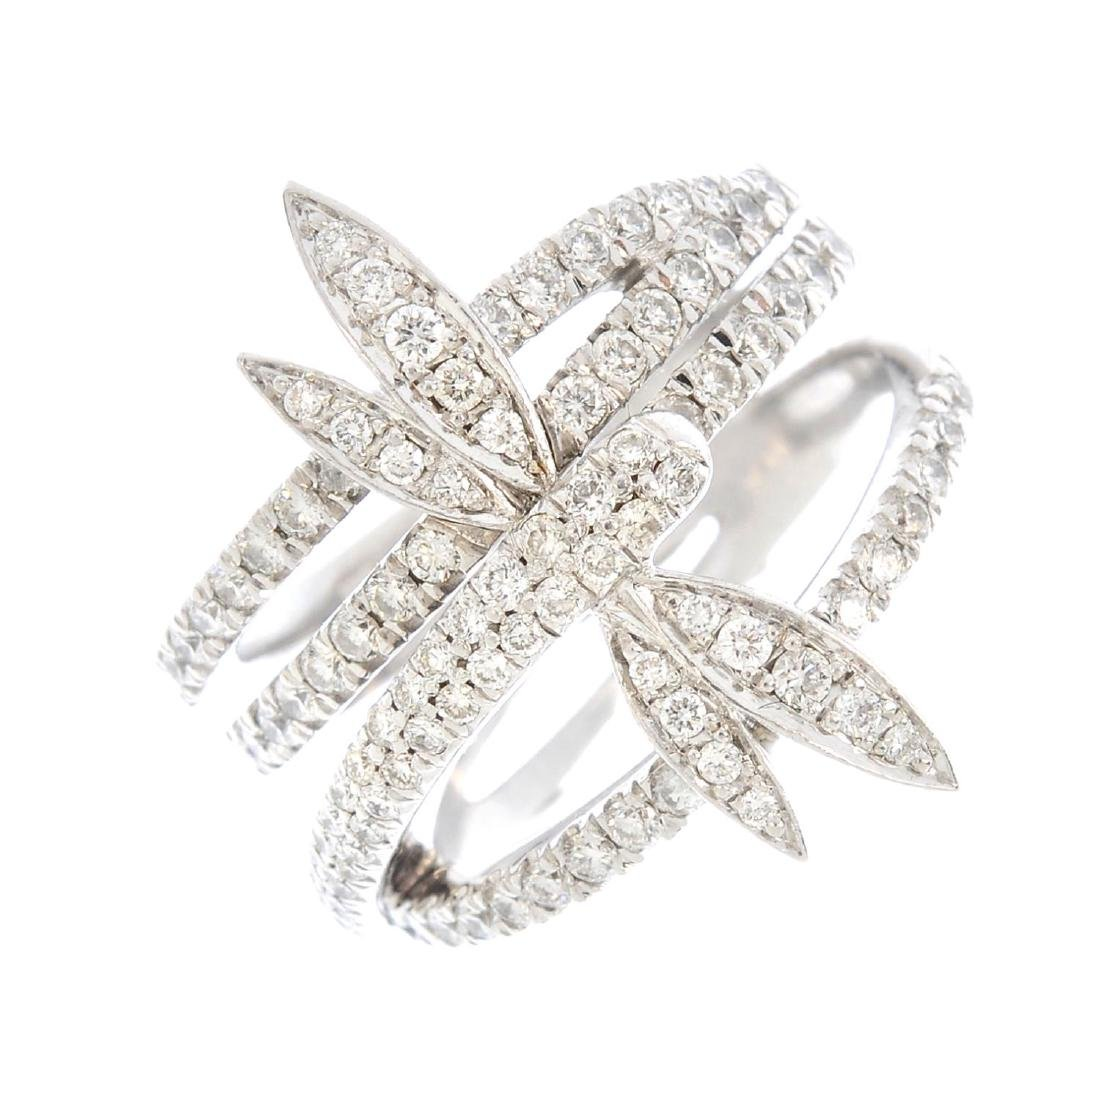 BOODLES & DUNTHORNE- an 18ct gold diamond ring. The